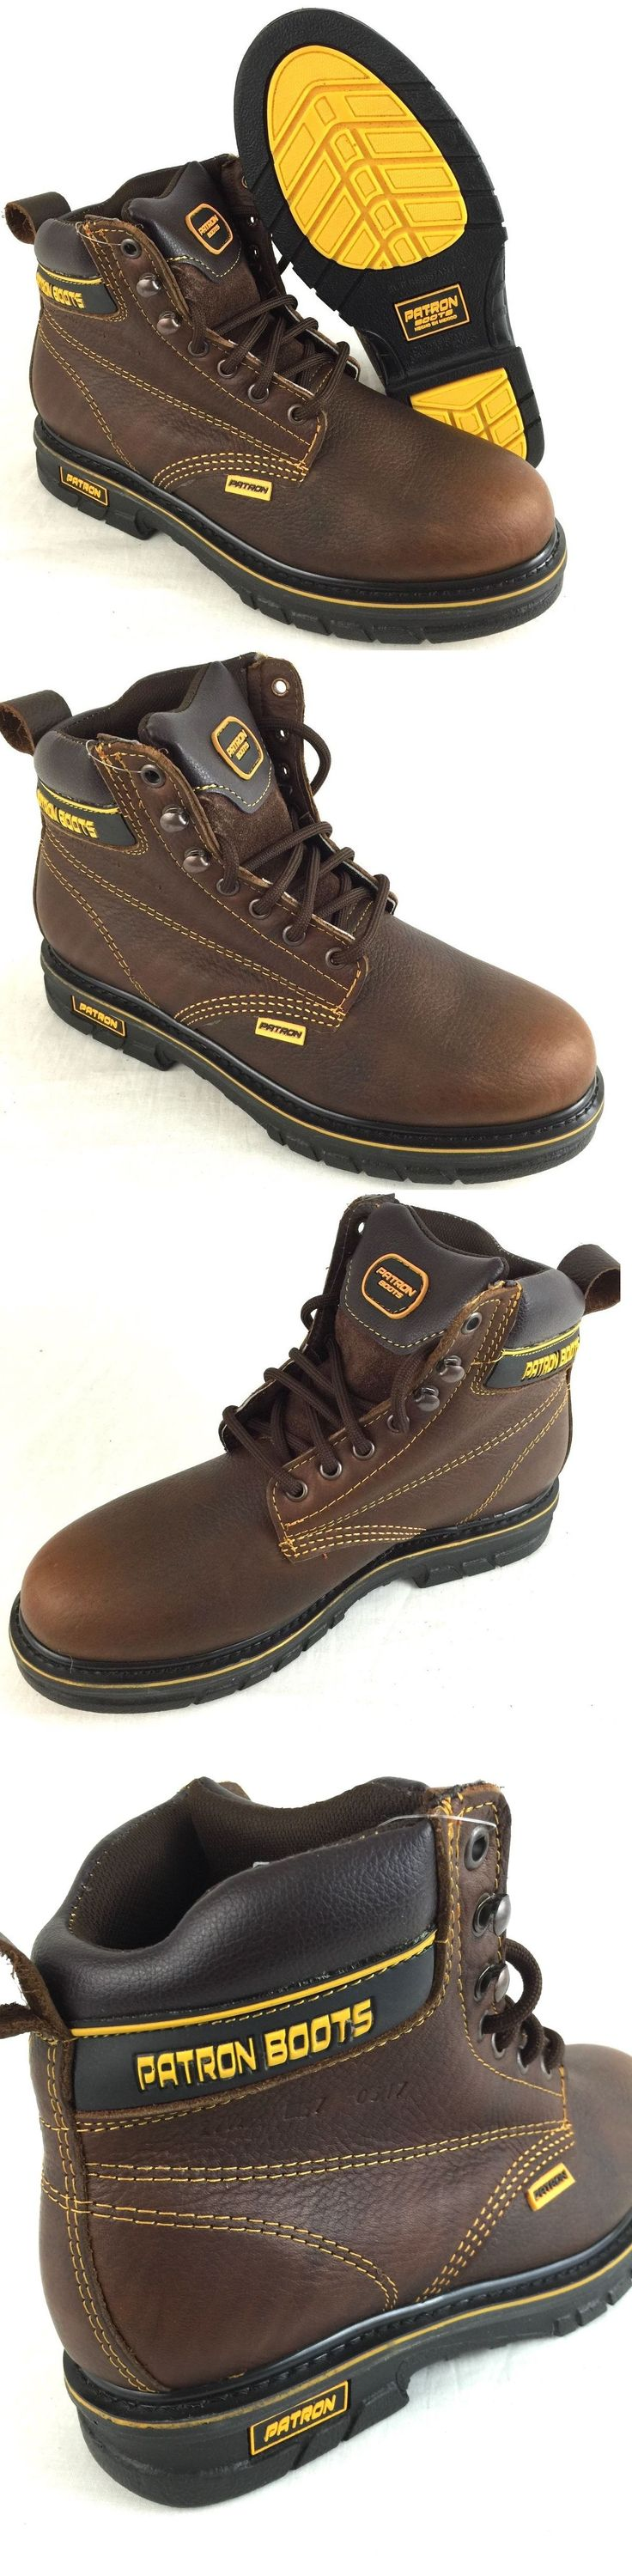 Boots 11498: Men S Work Boots Round Toe Genuine Leather Lace Up Safety Brown  Botas